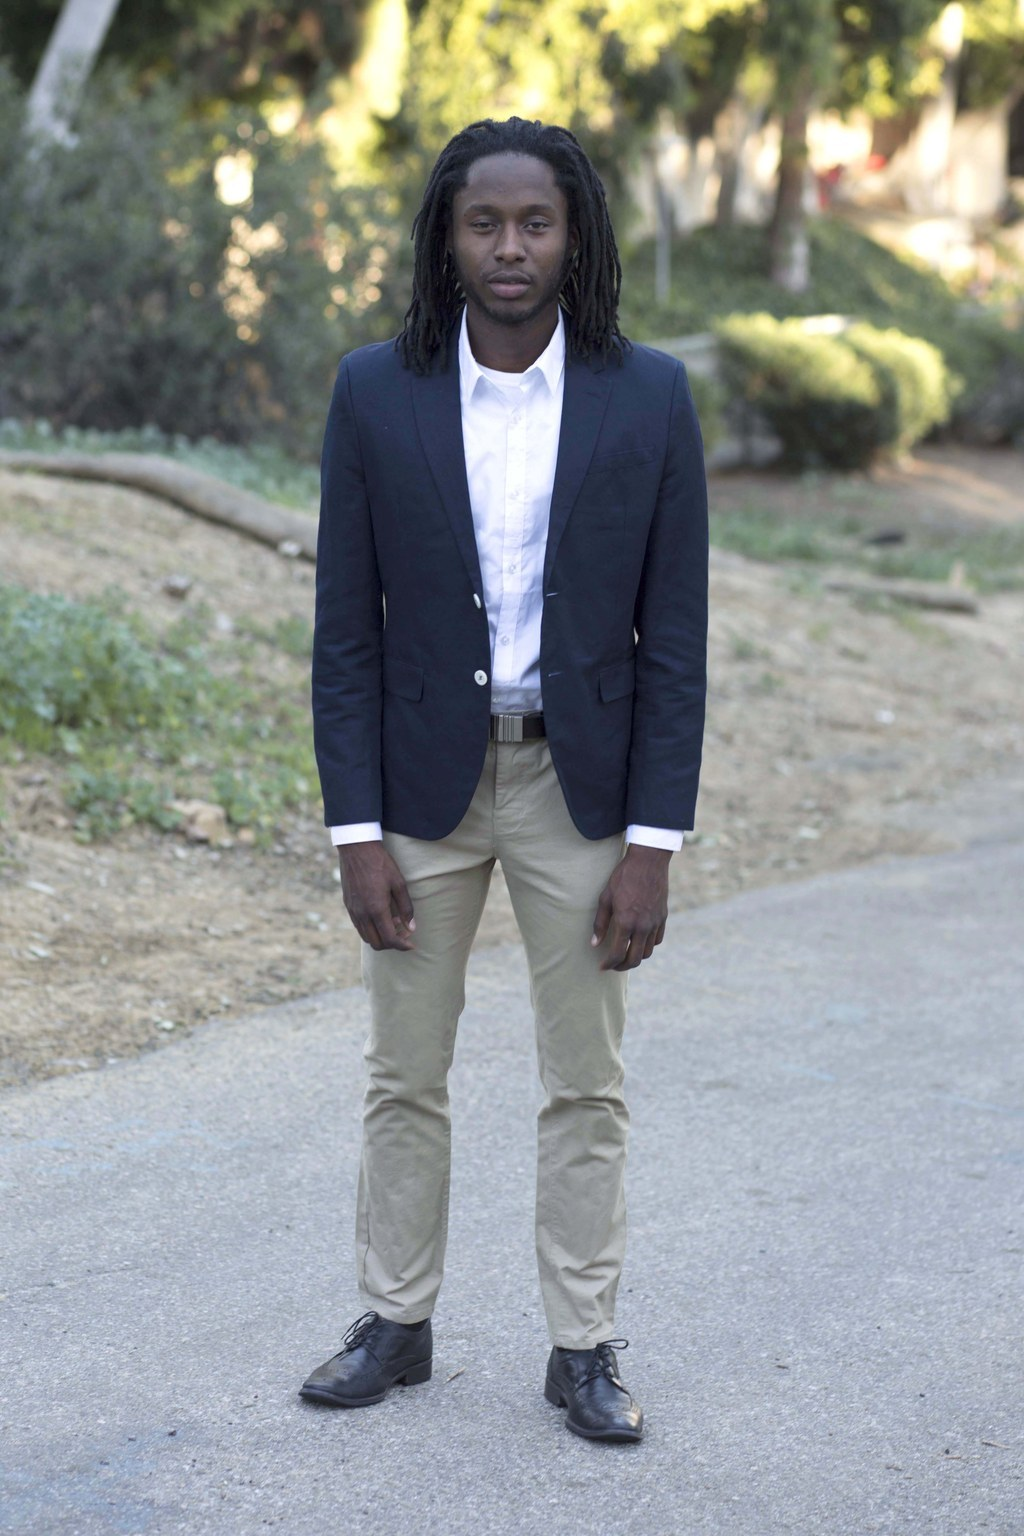 A Black Man Wore Different Kinds Of Clothing To See If People Treated Him Differently